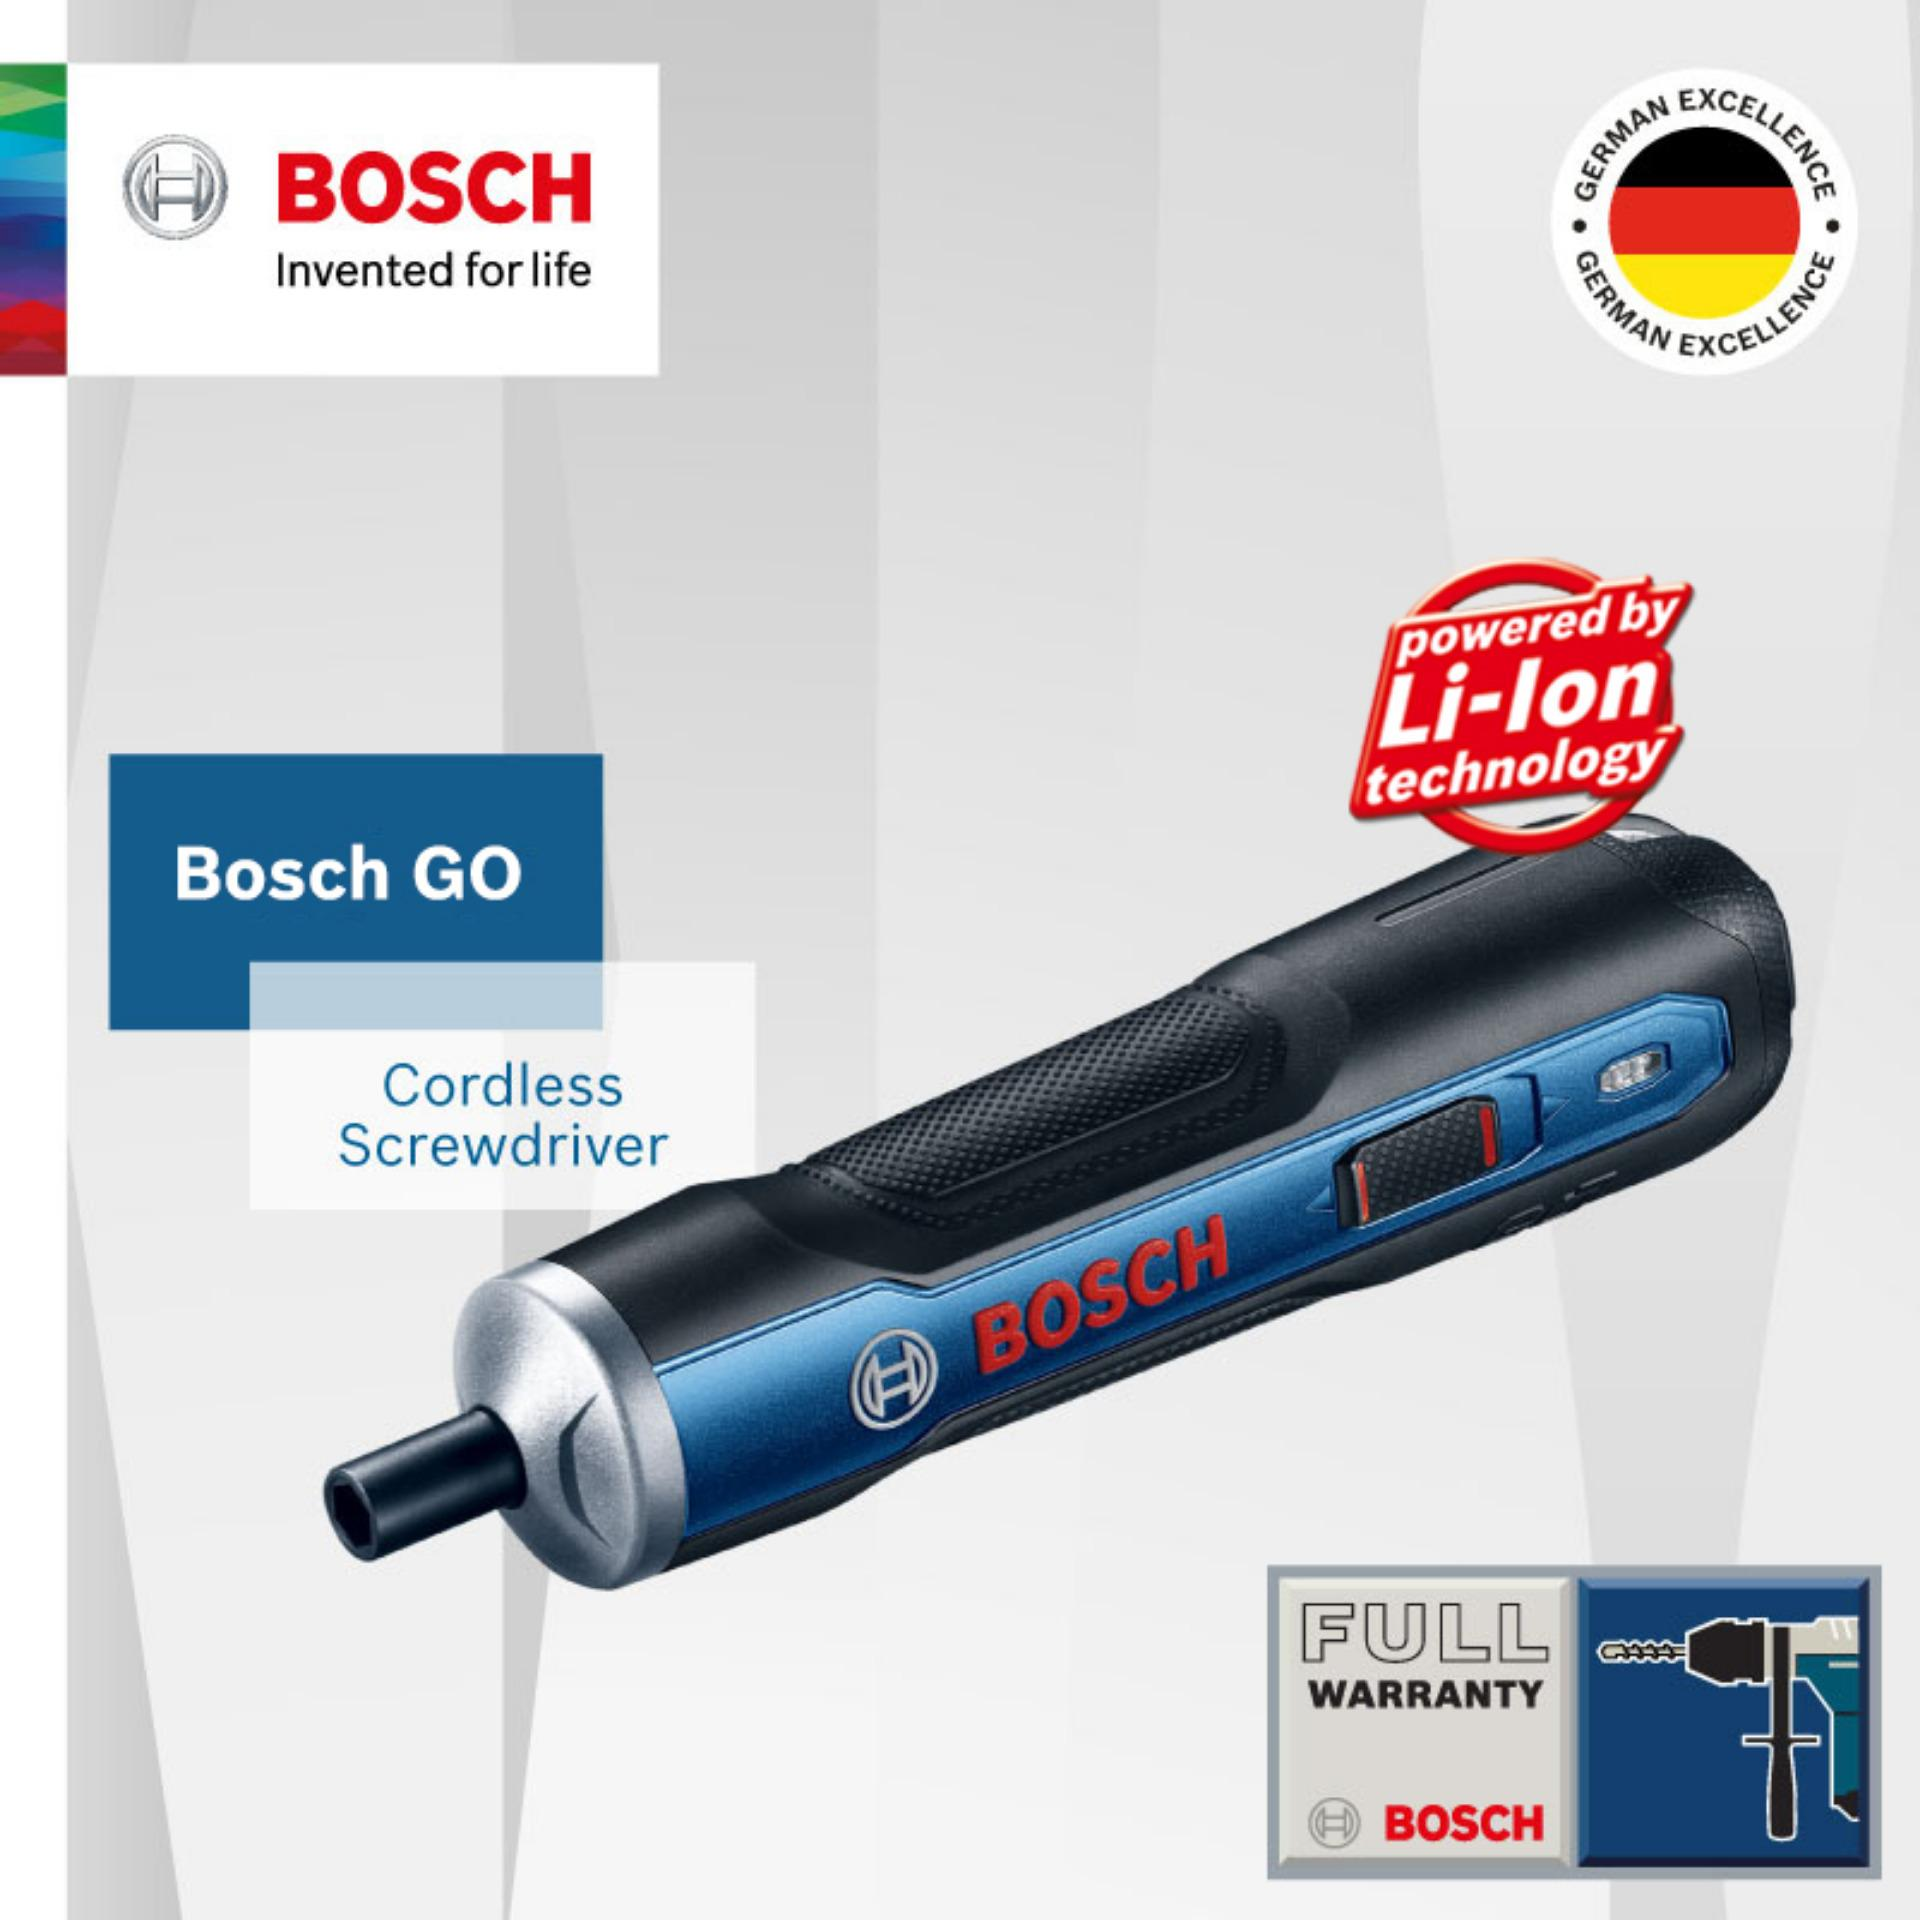 For Sale Bosch Go Cordless Screwdriver Kit With 33Pcs Screwdriver Bits